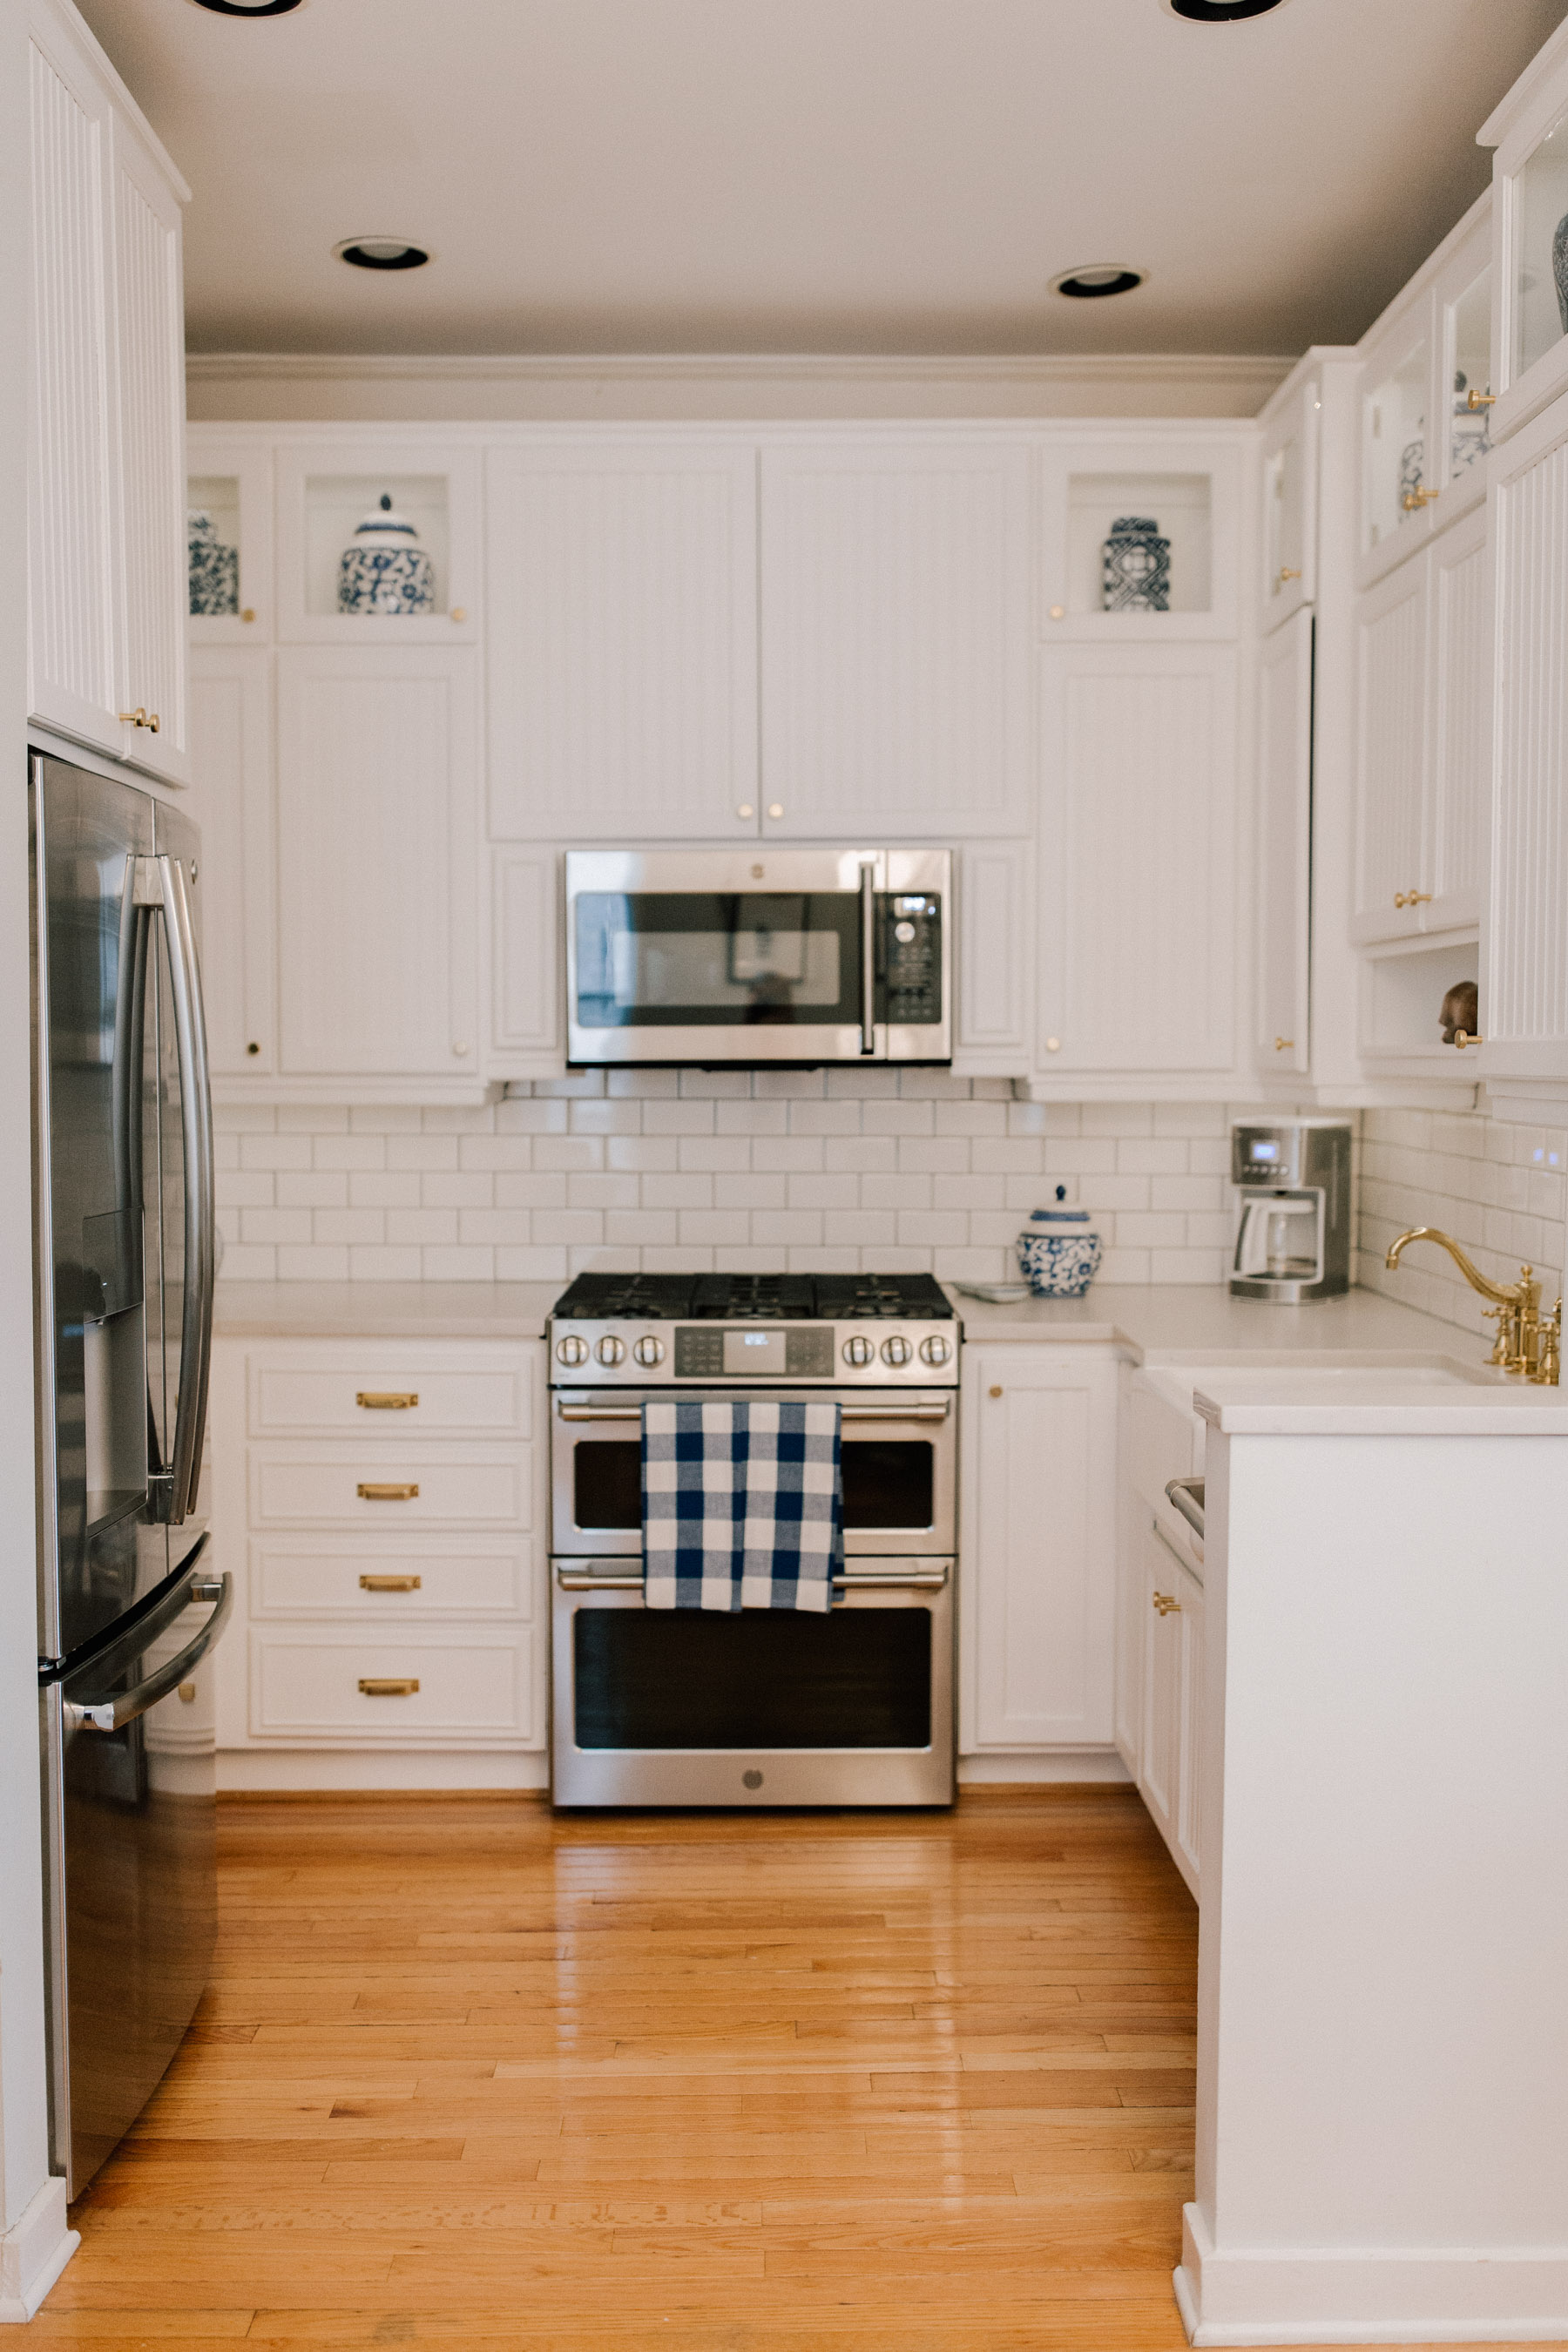 Our Kitchen Renovation, Two Months Later